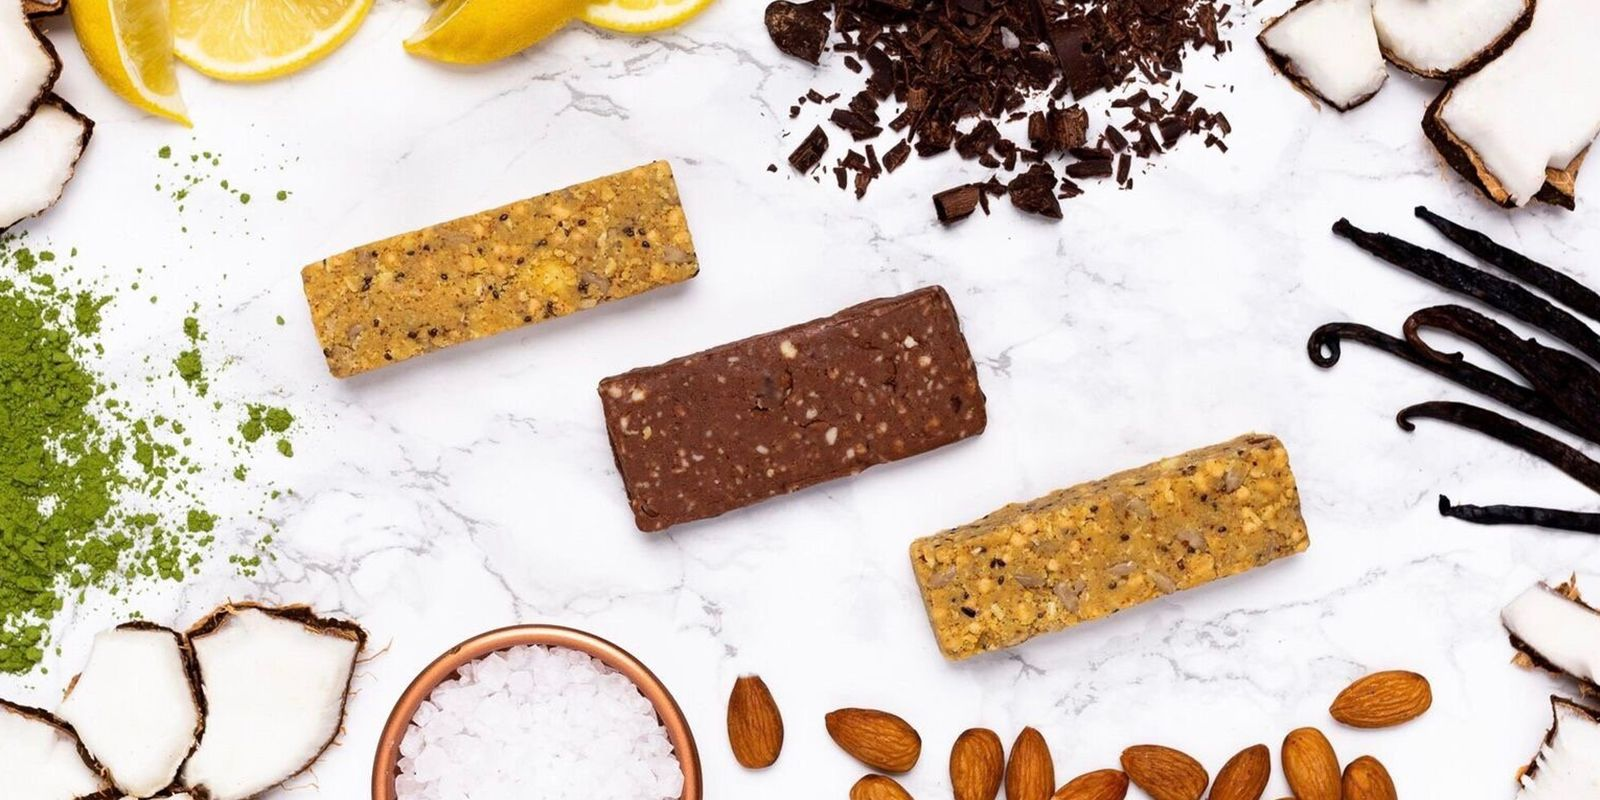 10 Best Keto Bars to Keep Your Diet On Track in 2019